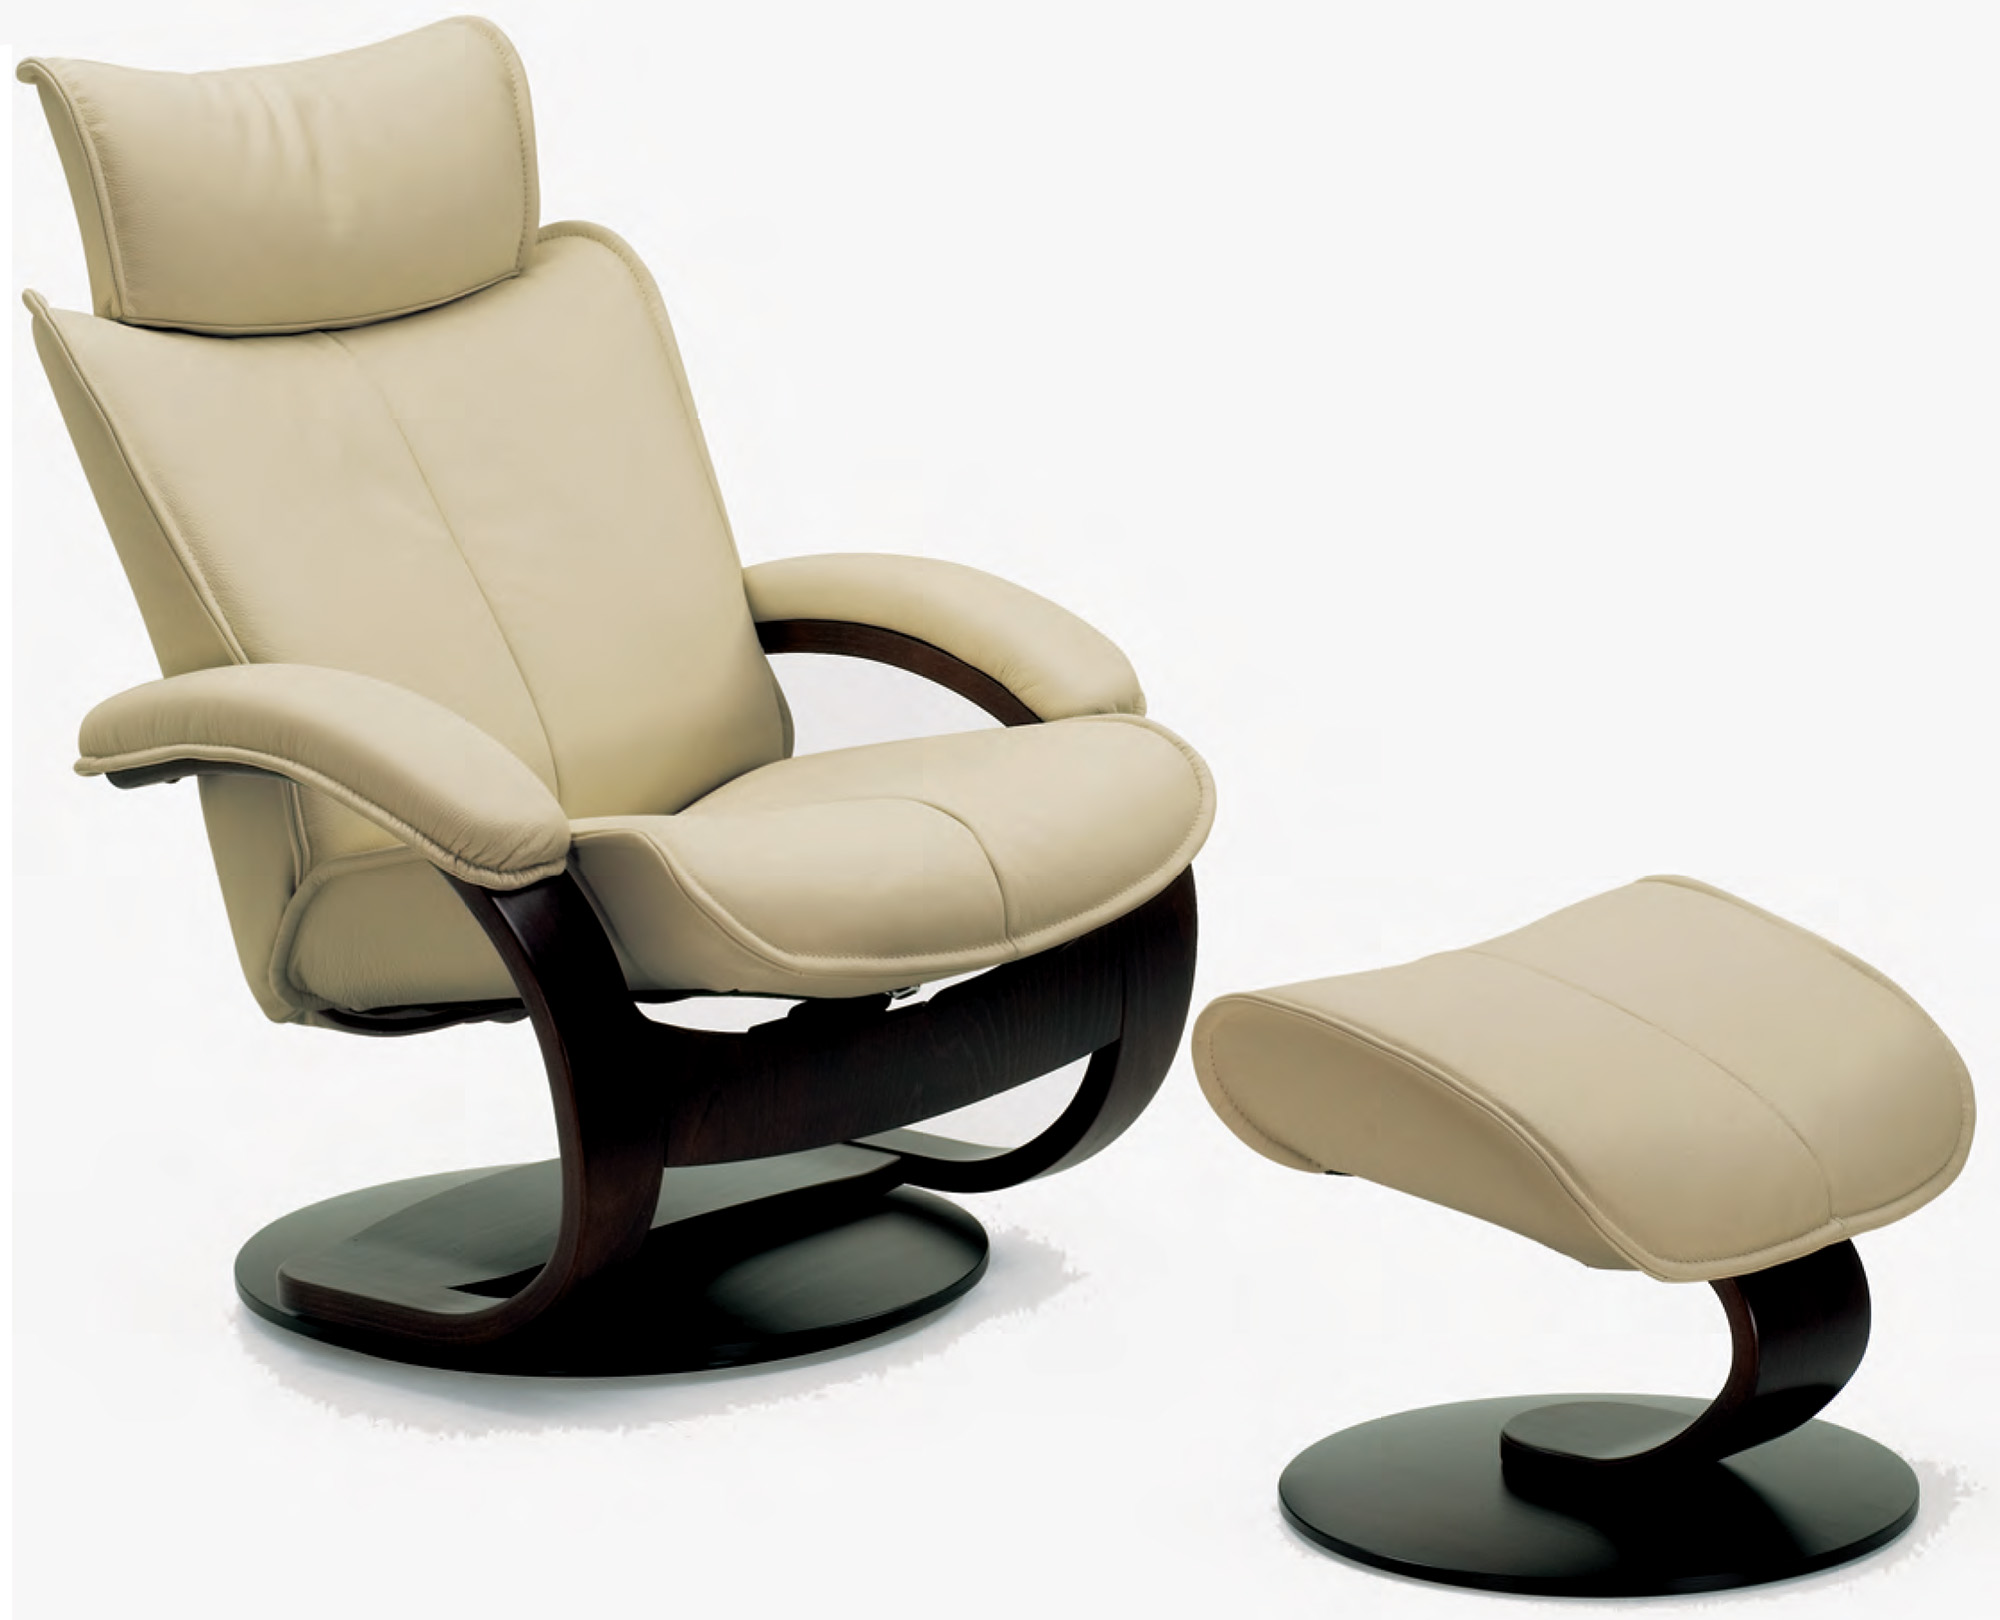 Good Fjords Ona Ergonomic Leather Recliner Chair And Ottoman Scandinavian Lounger